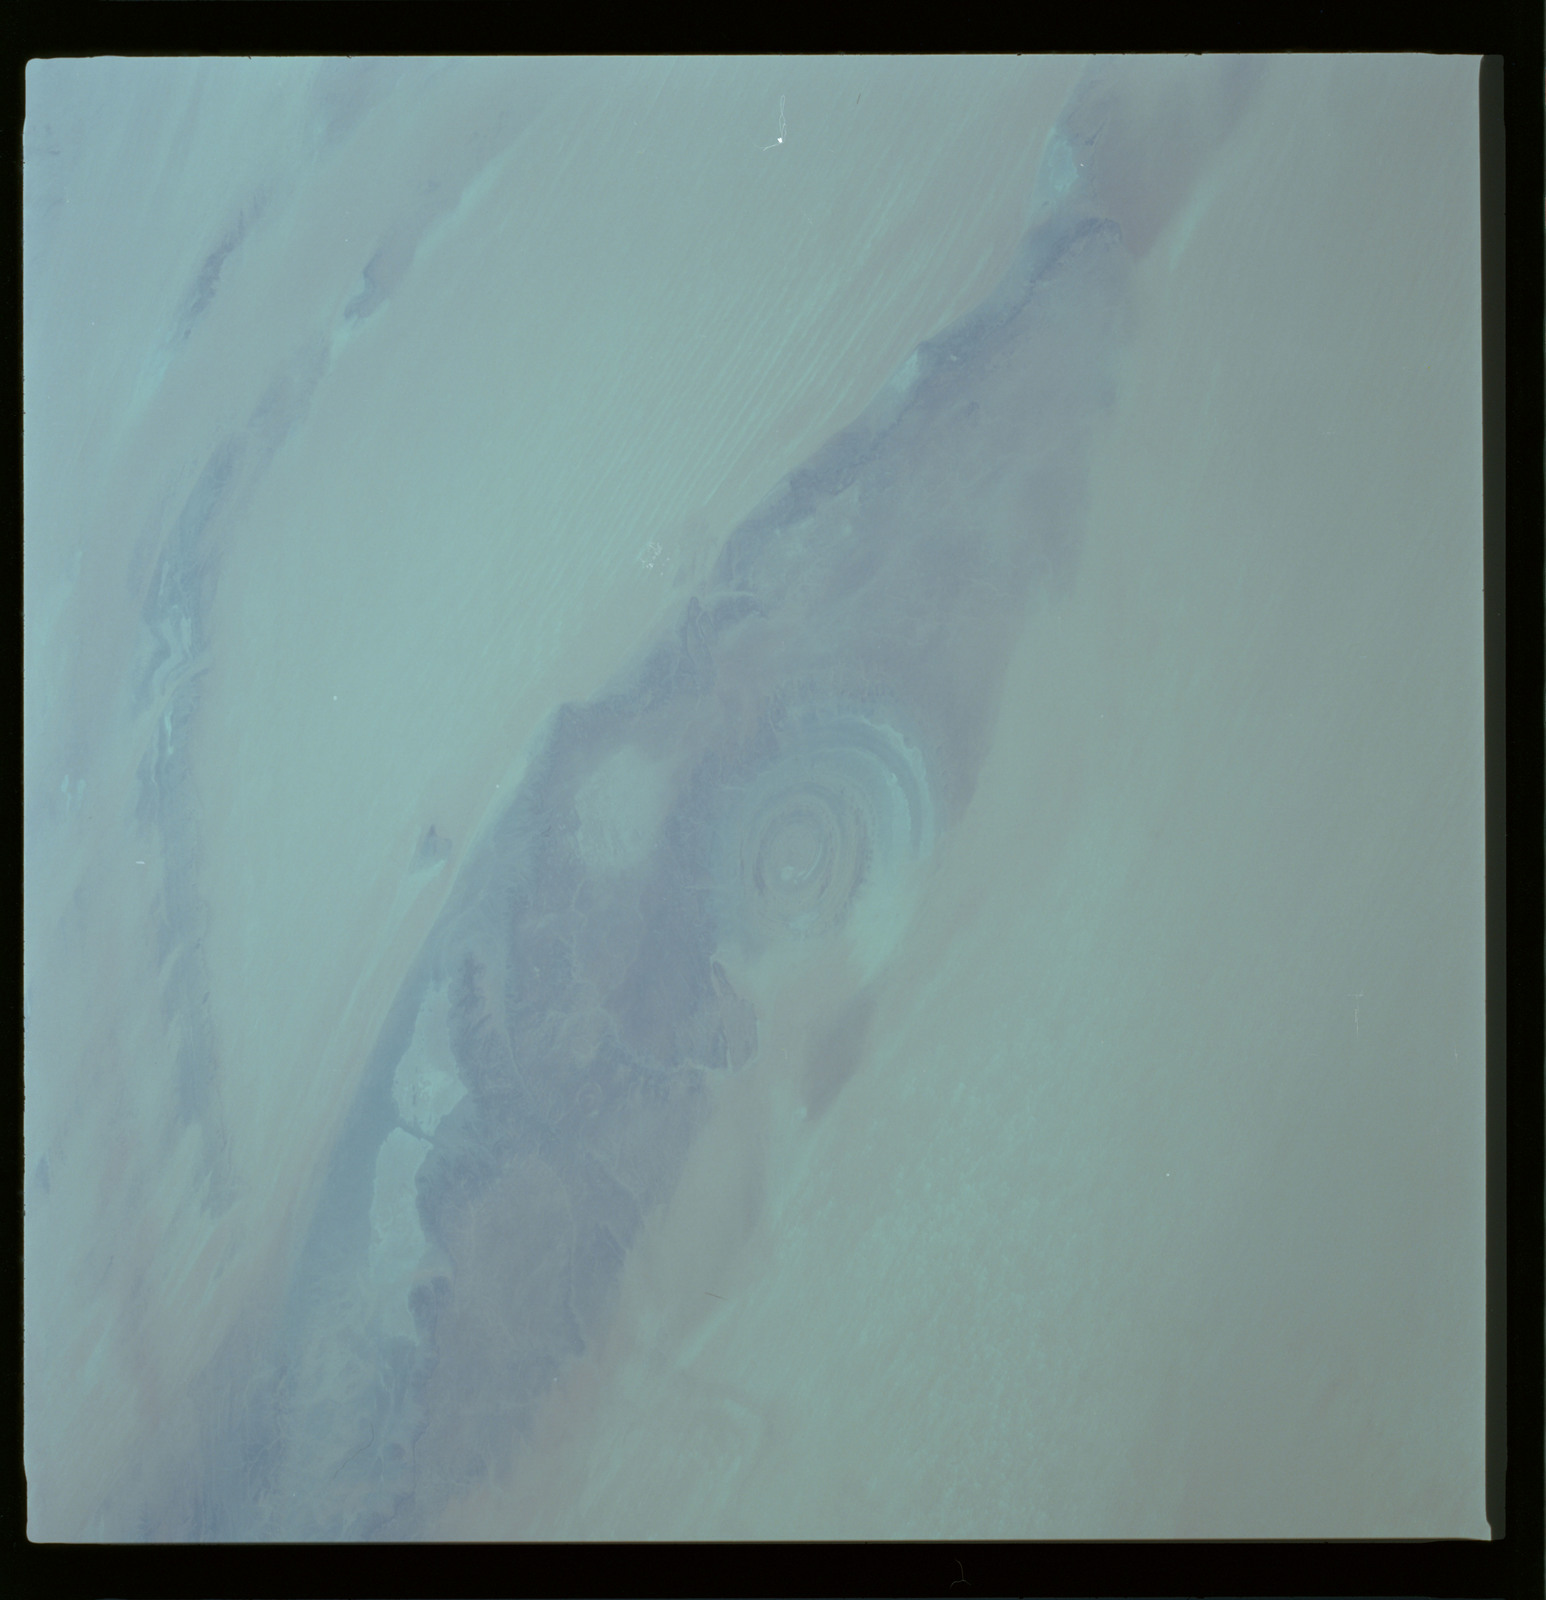 61A-490-007 - STS-61A - STS-61A ESA earth observations